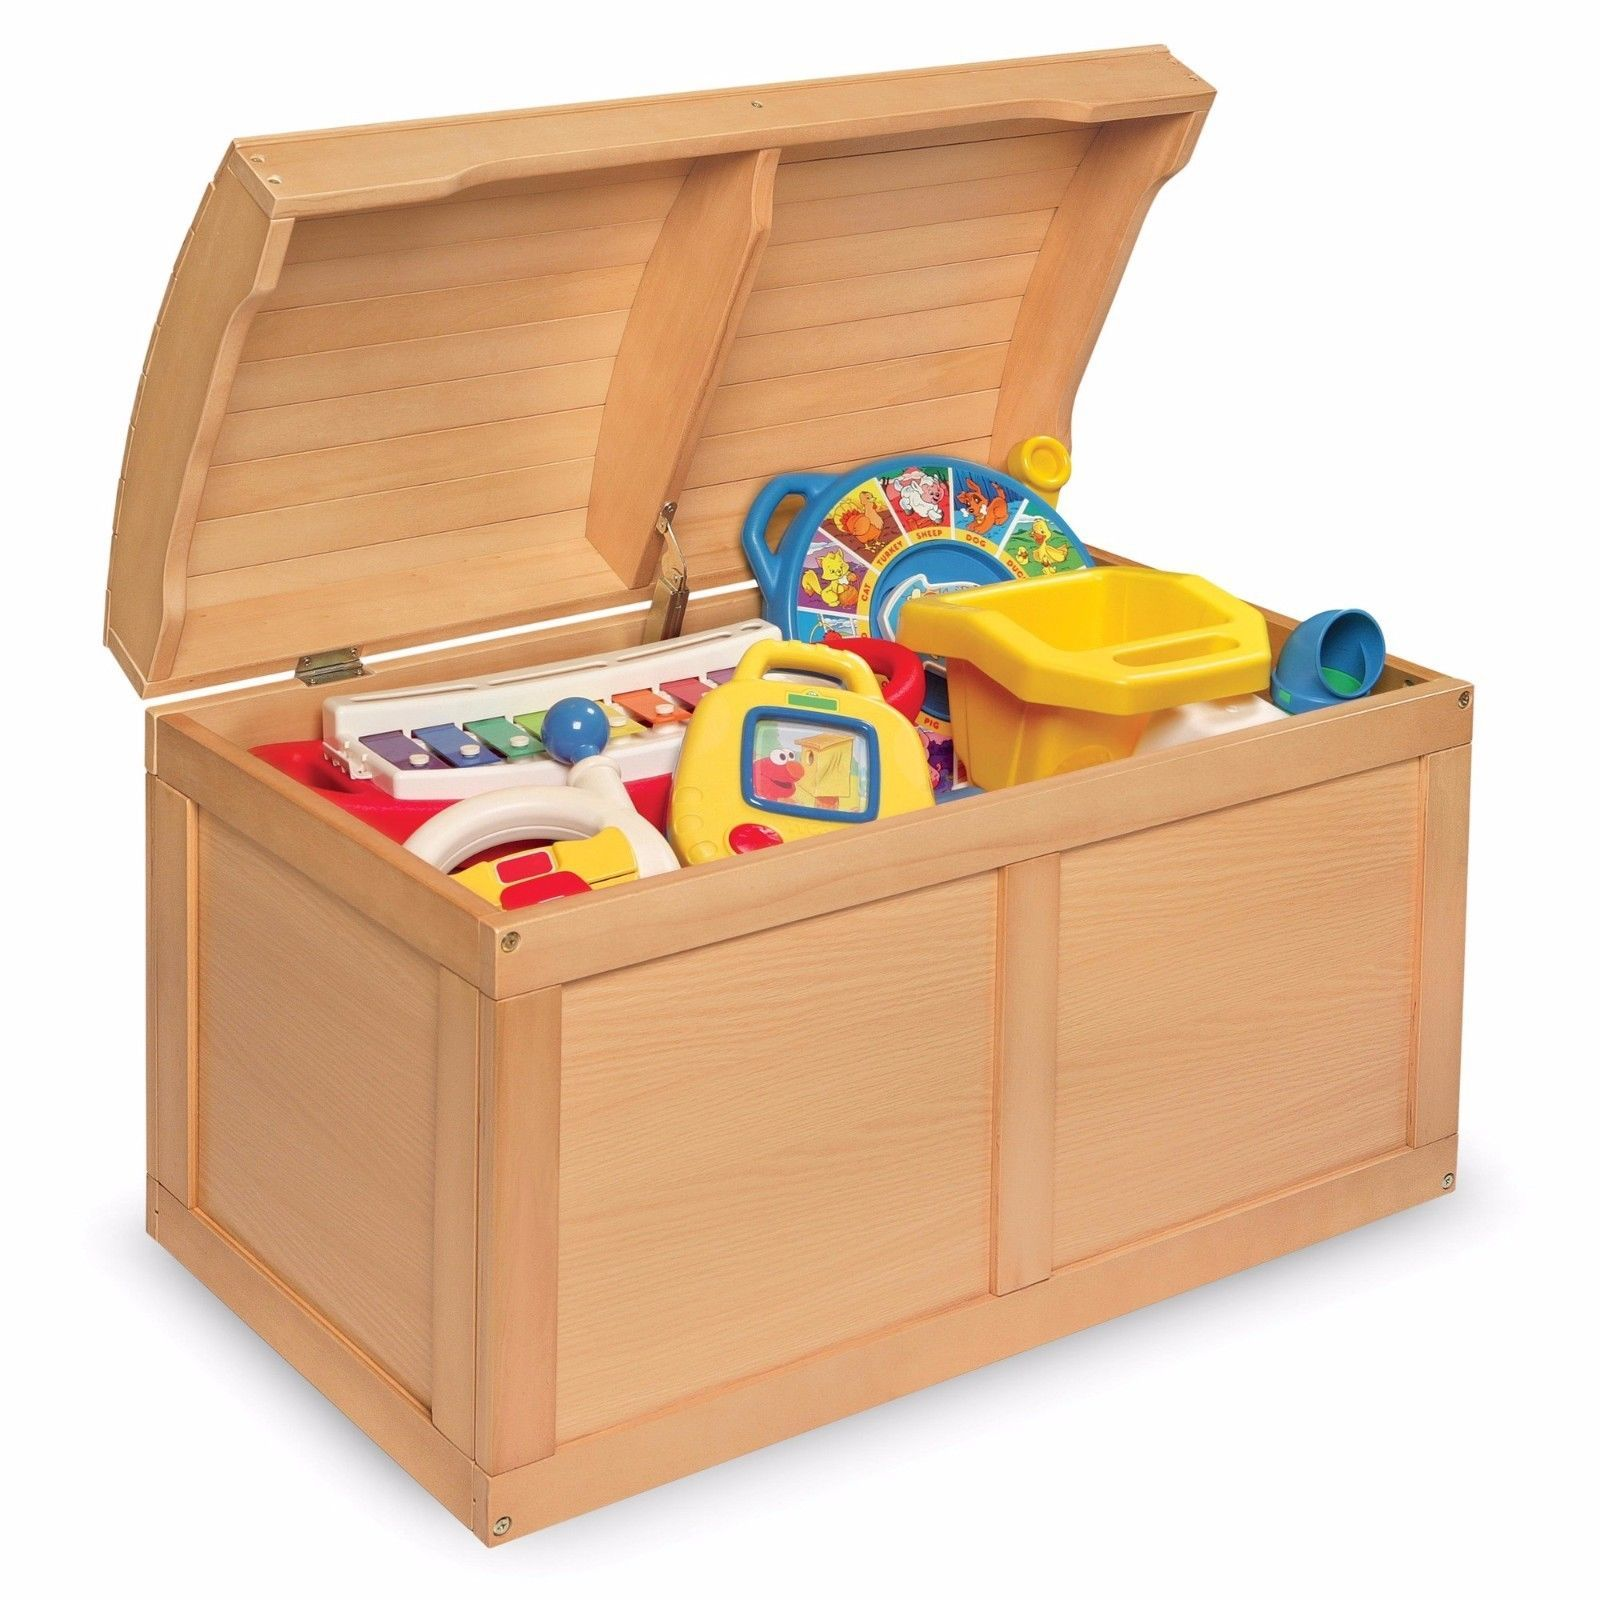 Wood Toy Treasure Chest Organizer Storage for Kids Bedroom Playroom